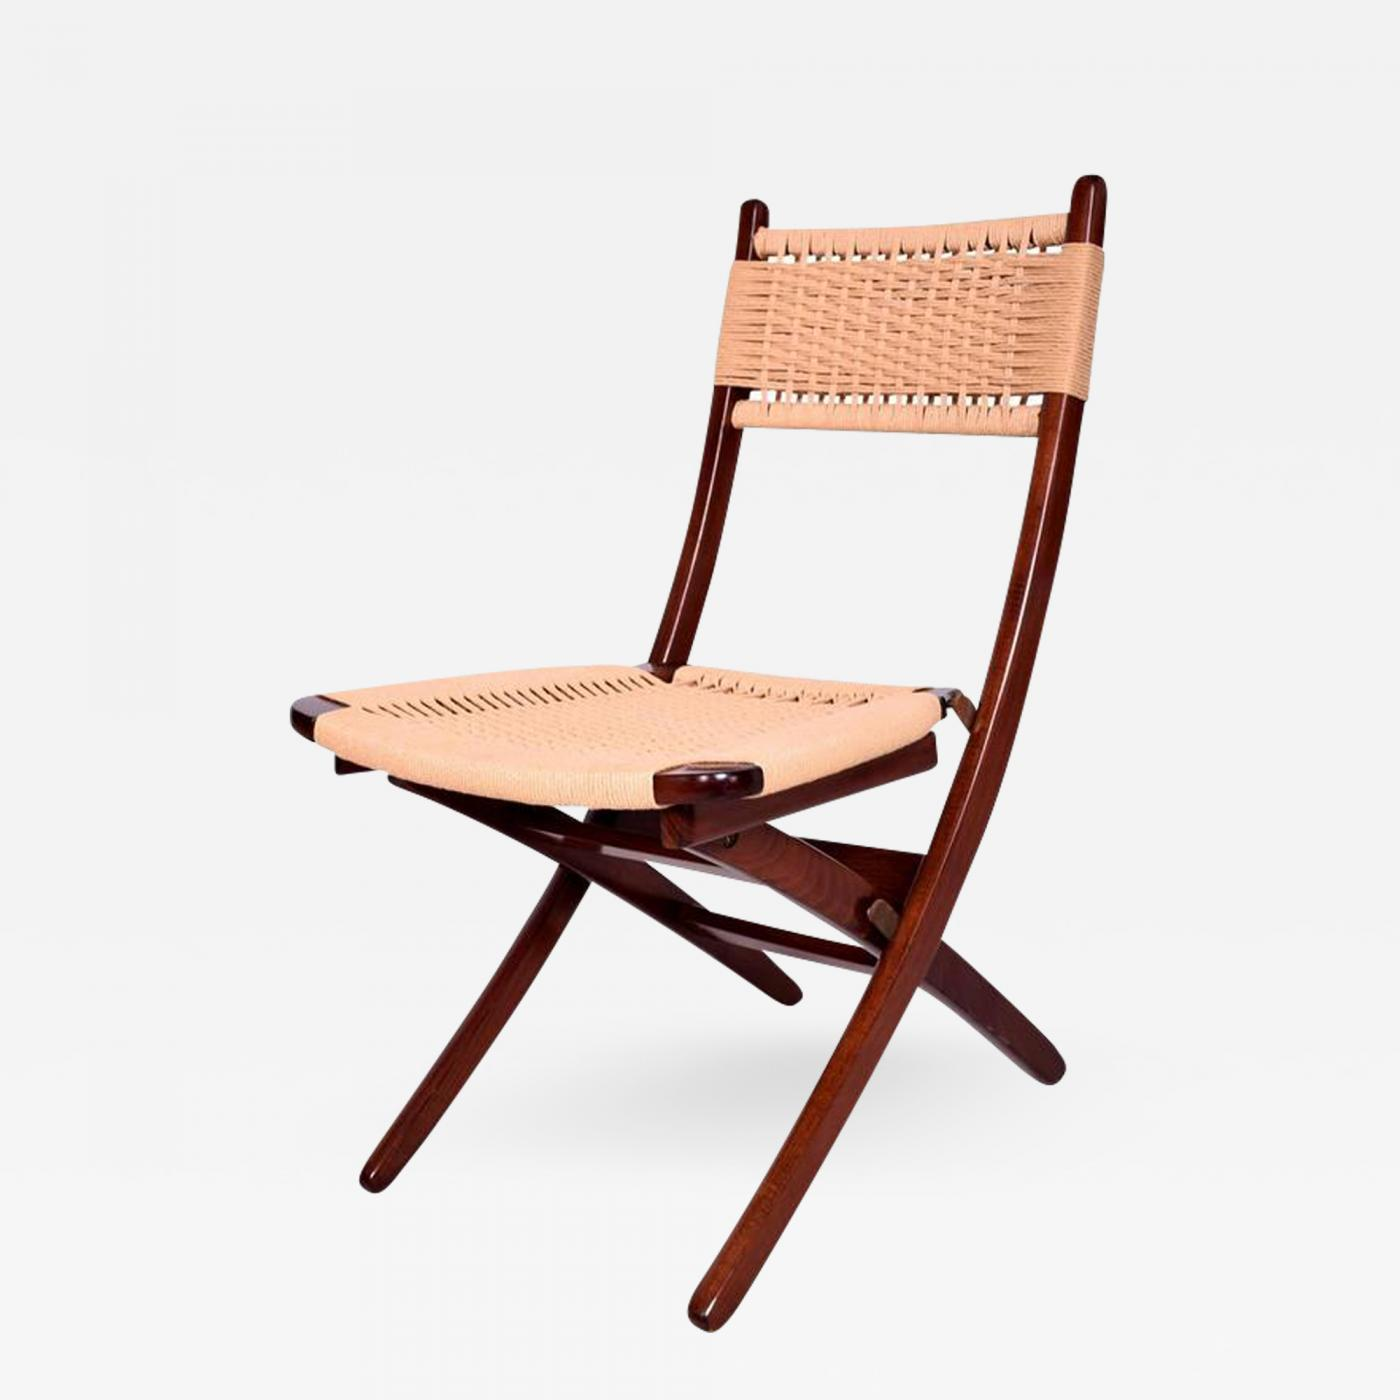 hans wegner mid century danish modern rope folding chair rh incollect com modern rope swing chair Bungee Chair